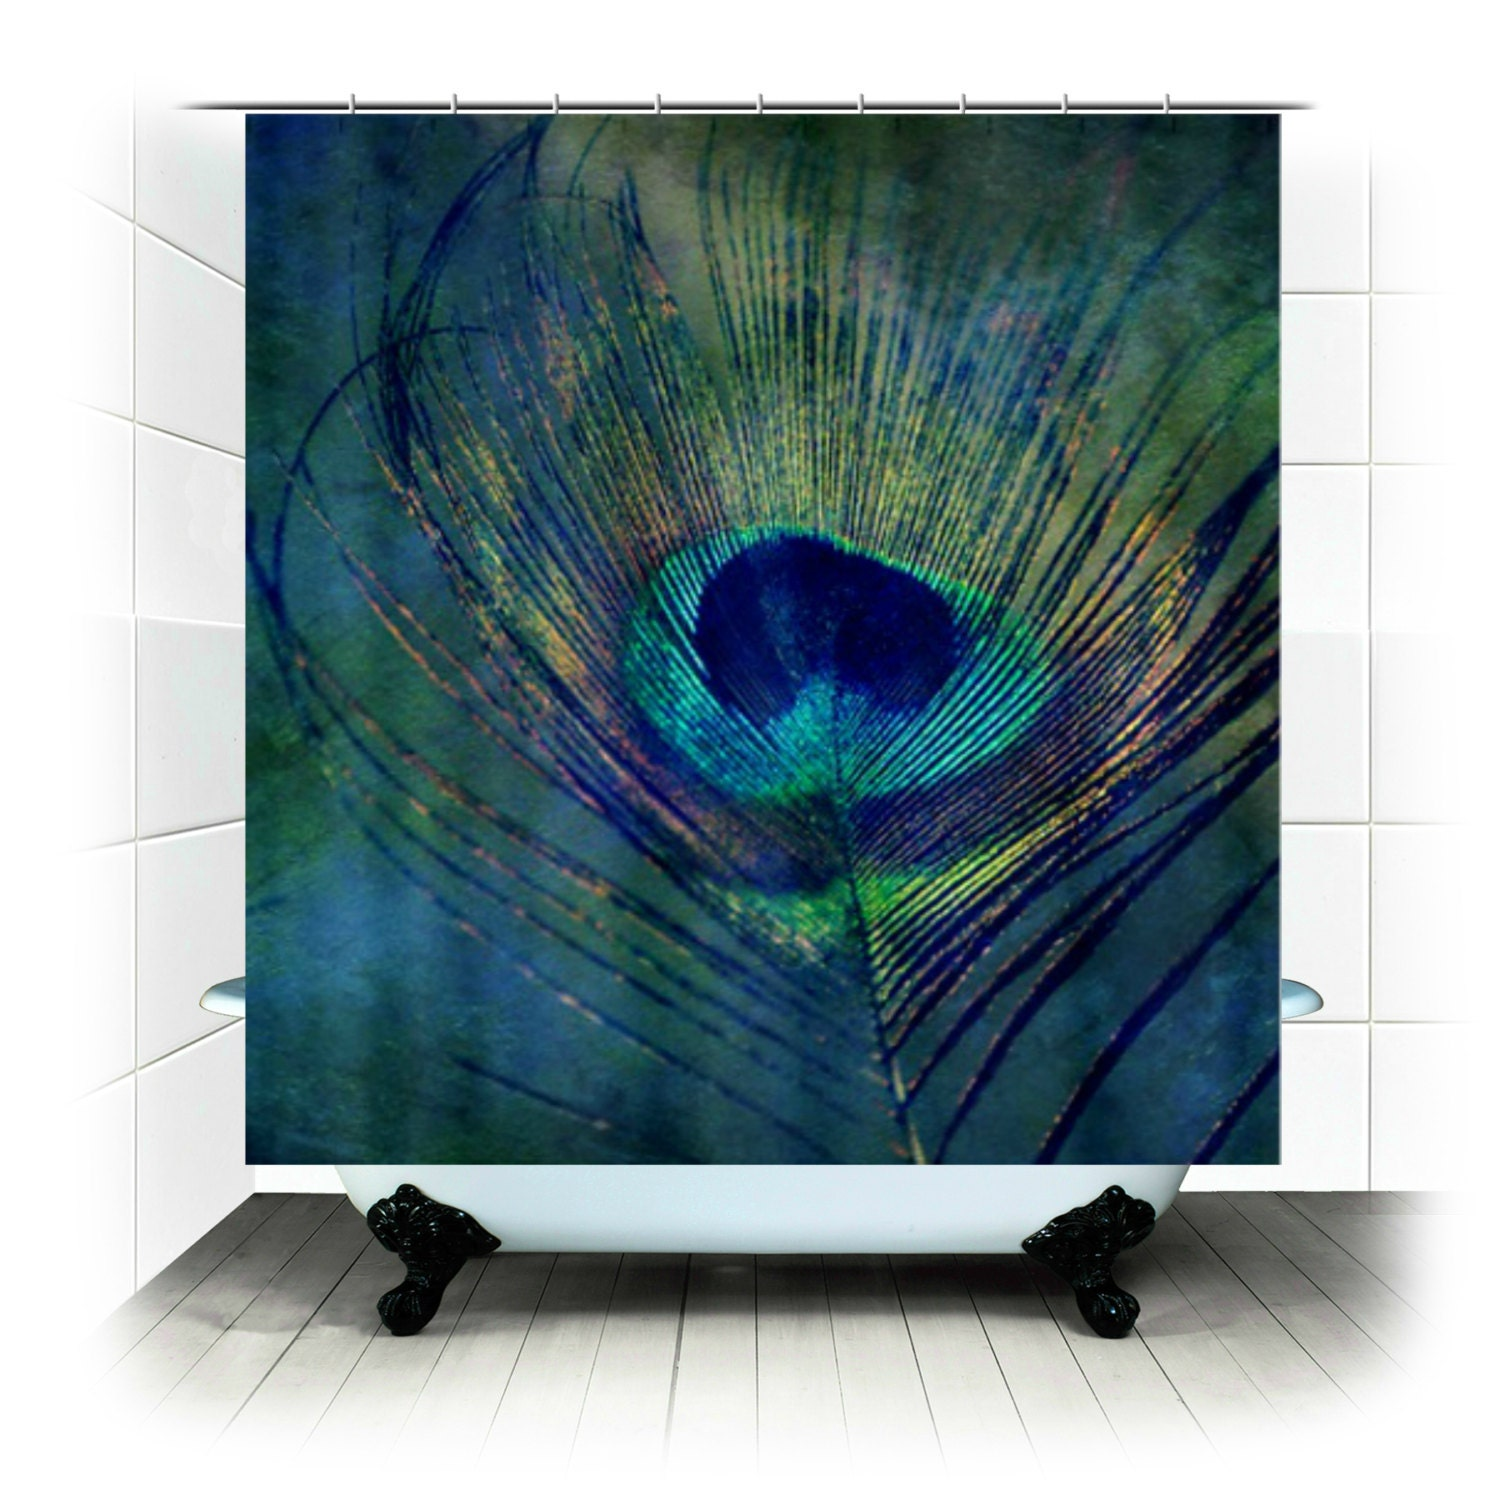 Http Www Etsy Com Listing 153841661 Plume Peacock Feather Fabric Shower